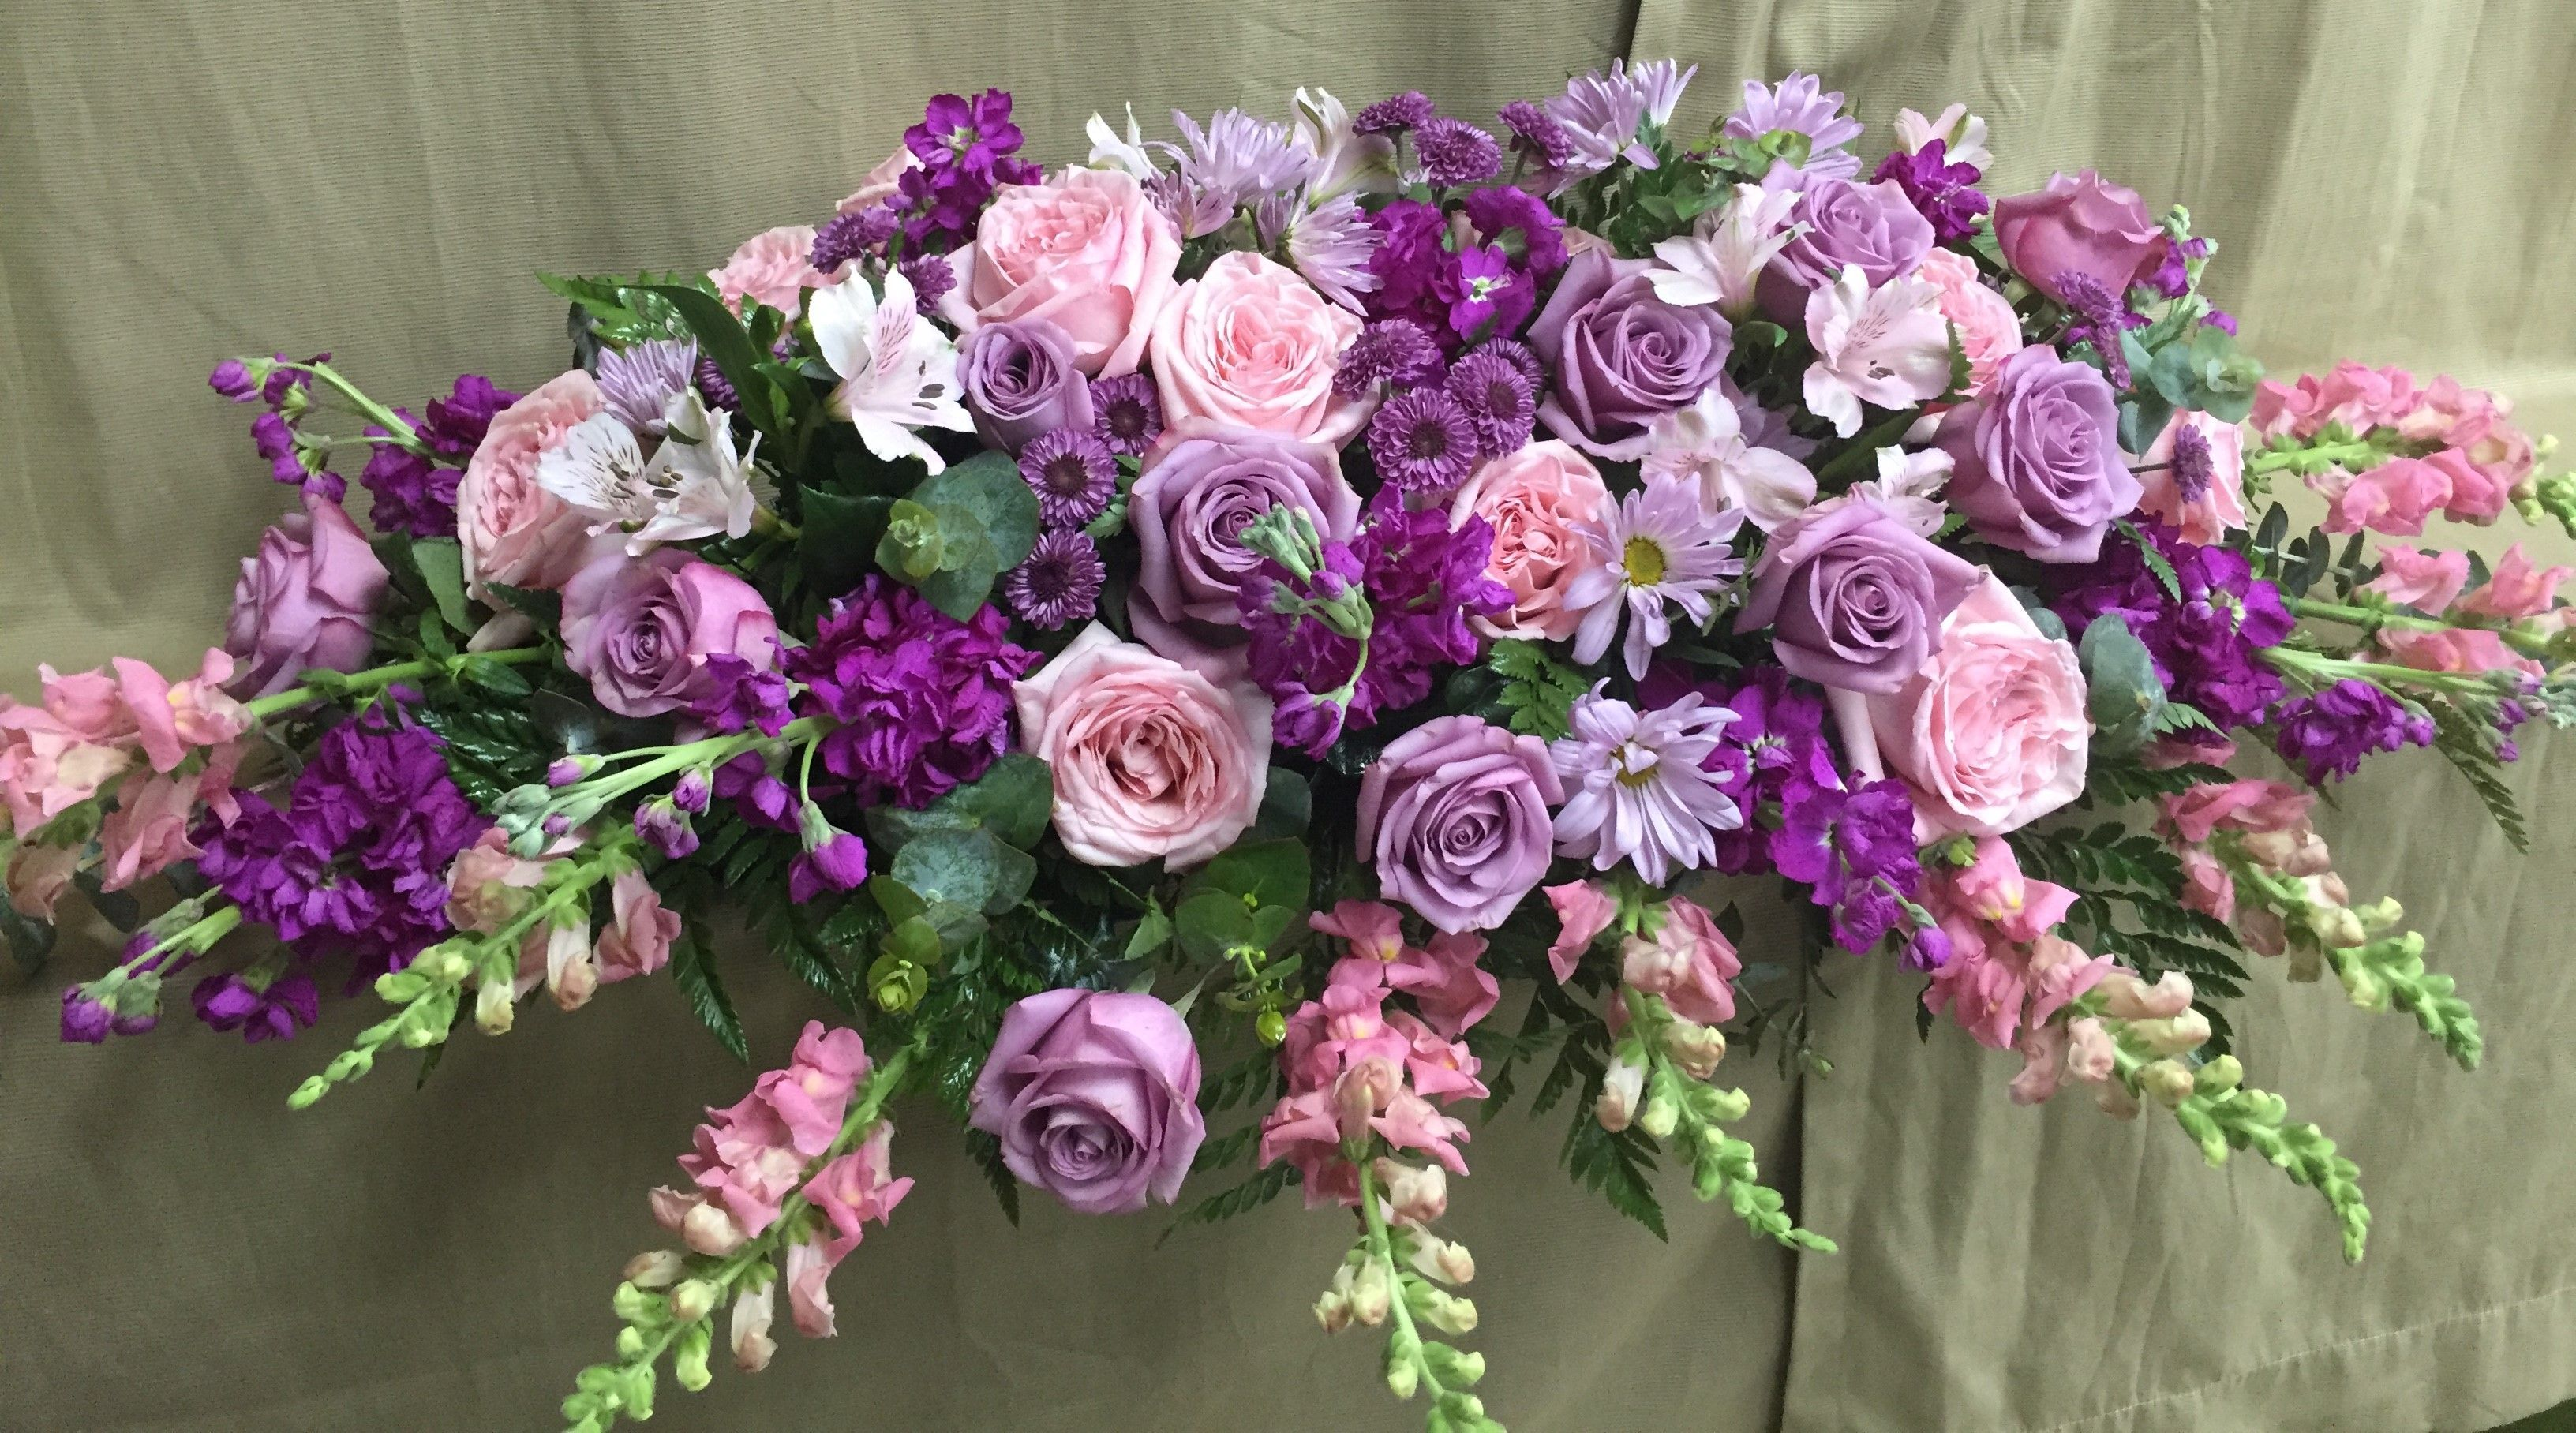 21 funeral flowers from interflora funeral attire funeral and 21 funeral flowers from interflora izmirmasajfo Images